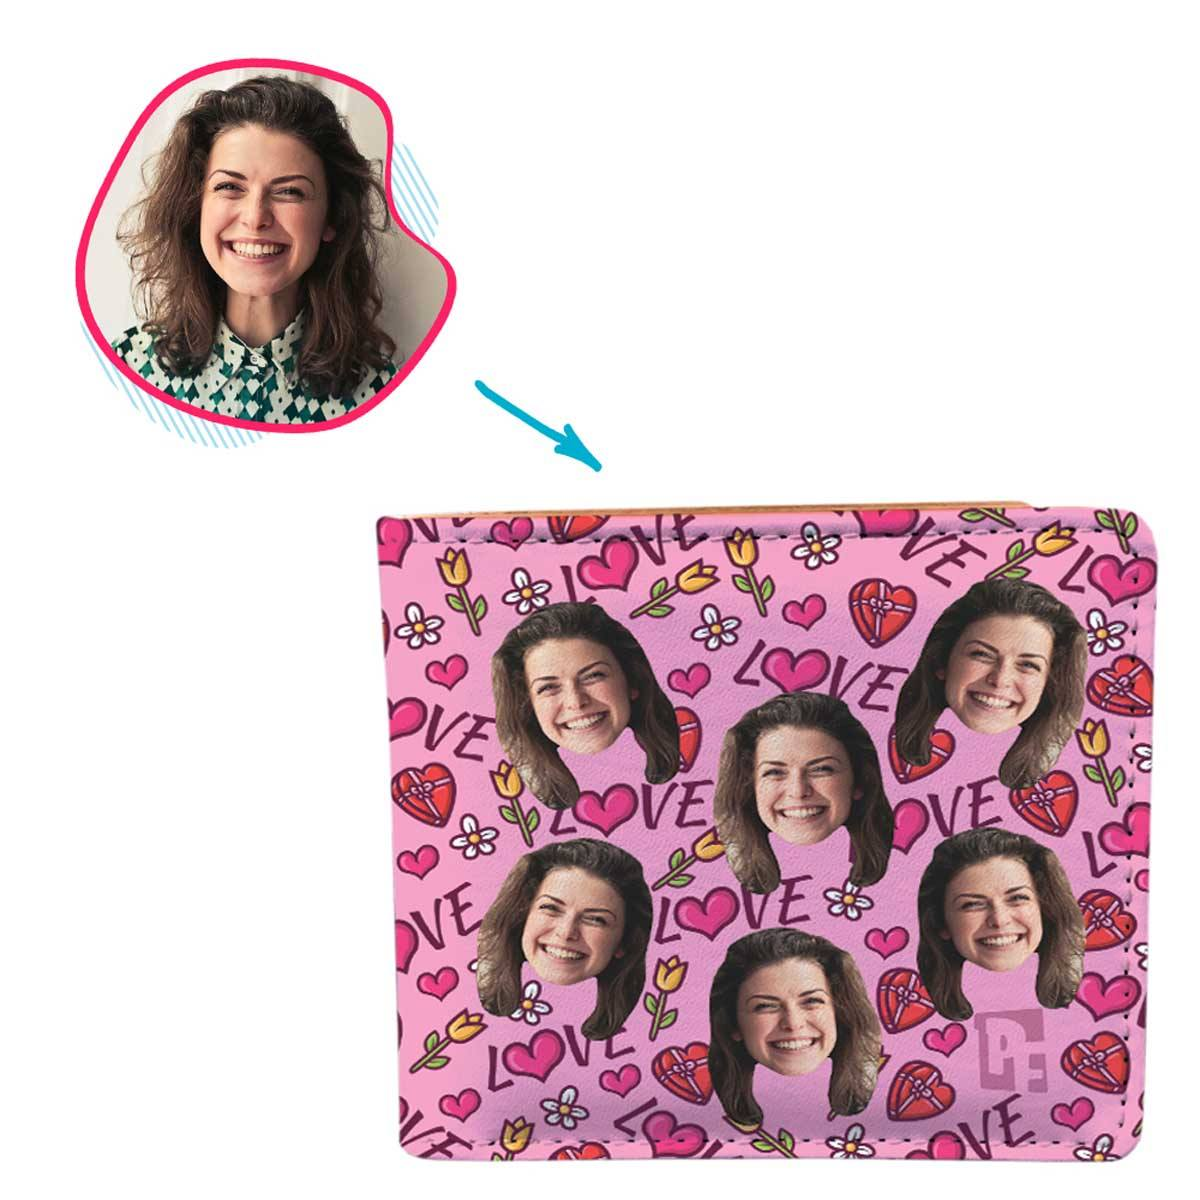 pink Hearts and Flowers wallet personalized with photo of face printed on it